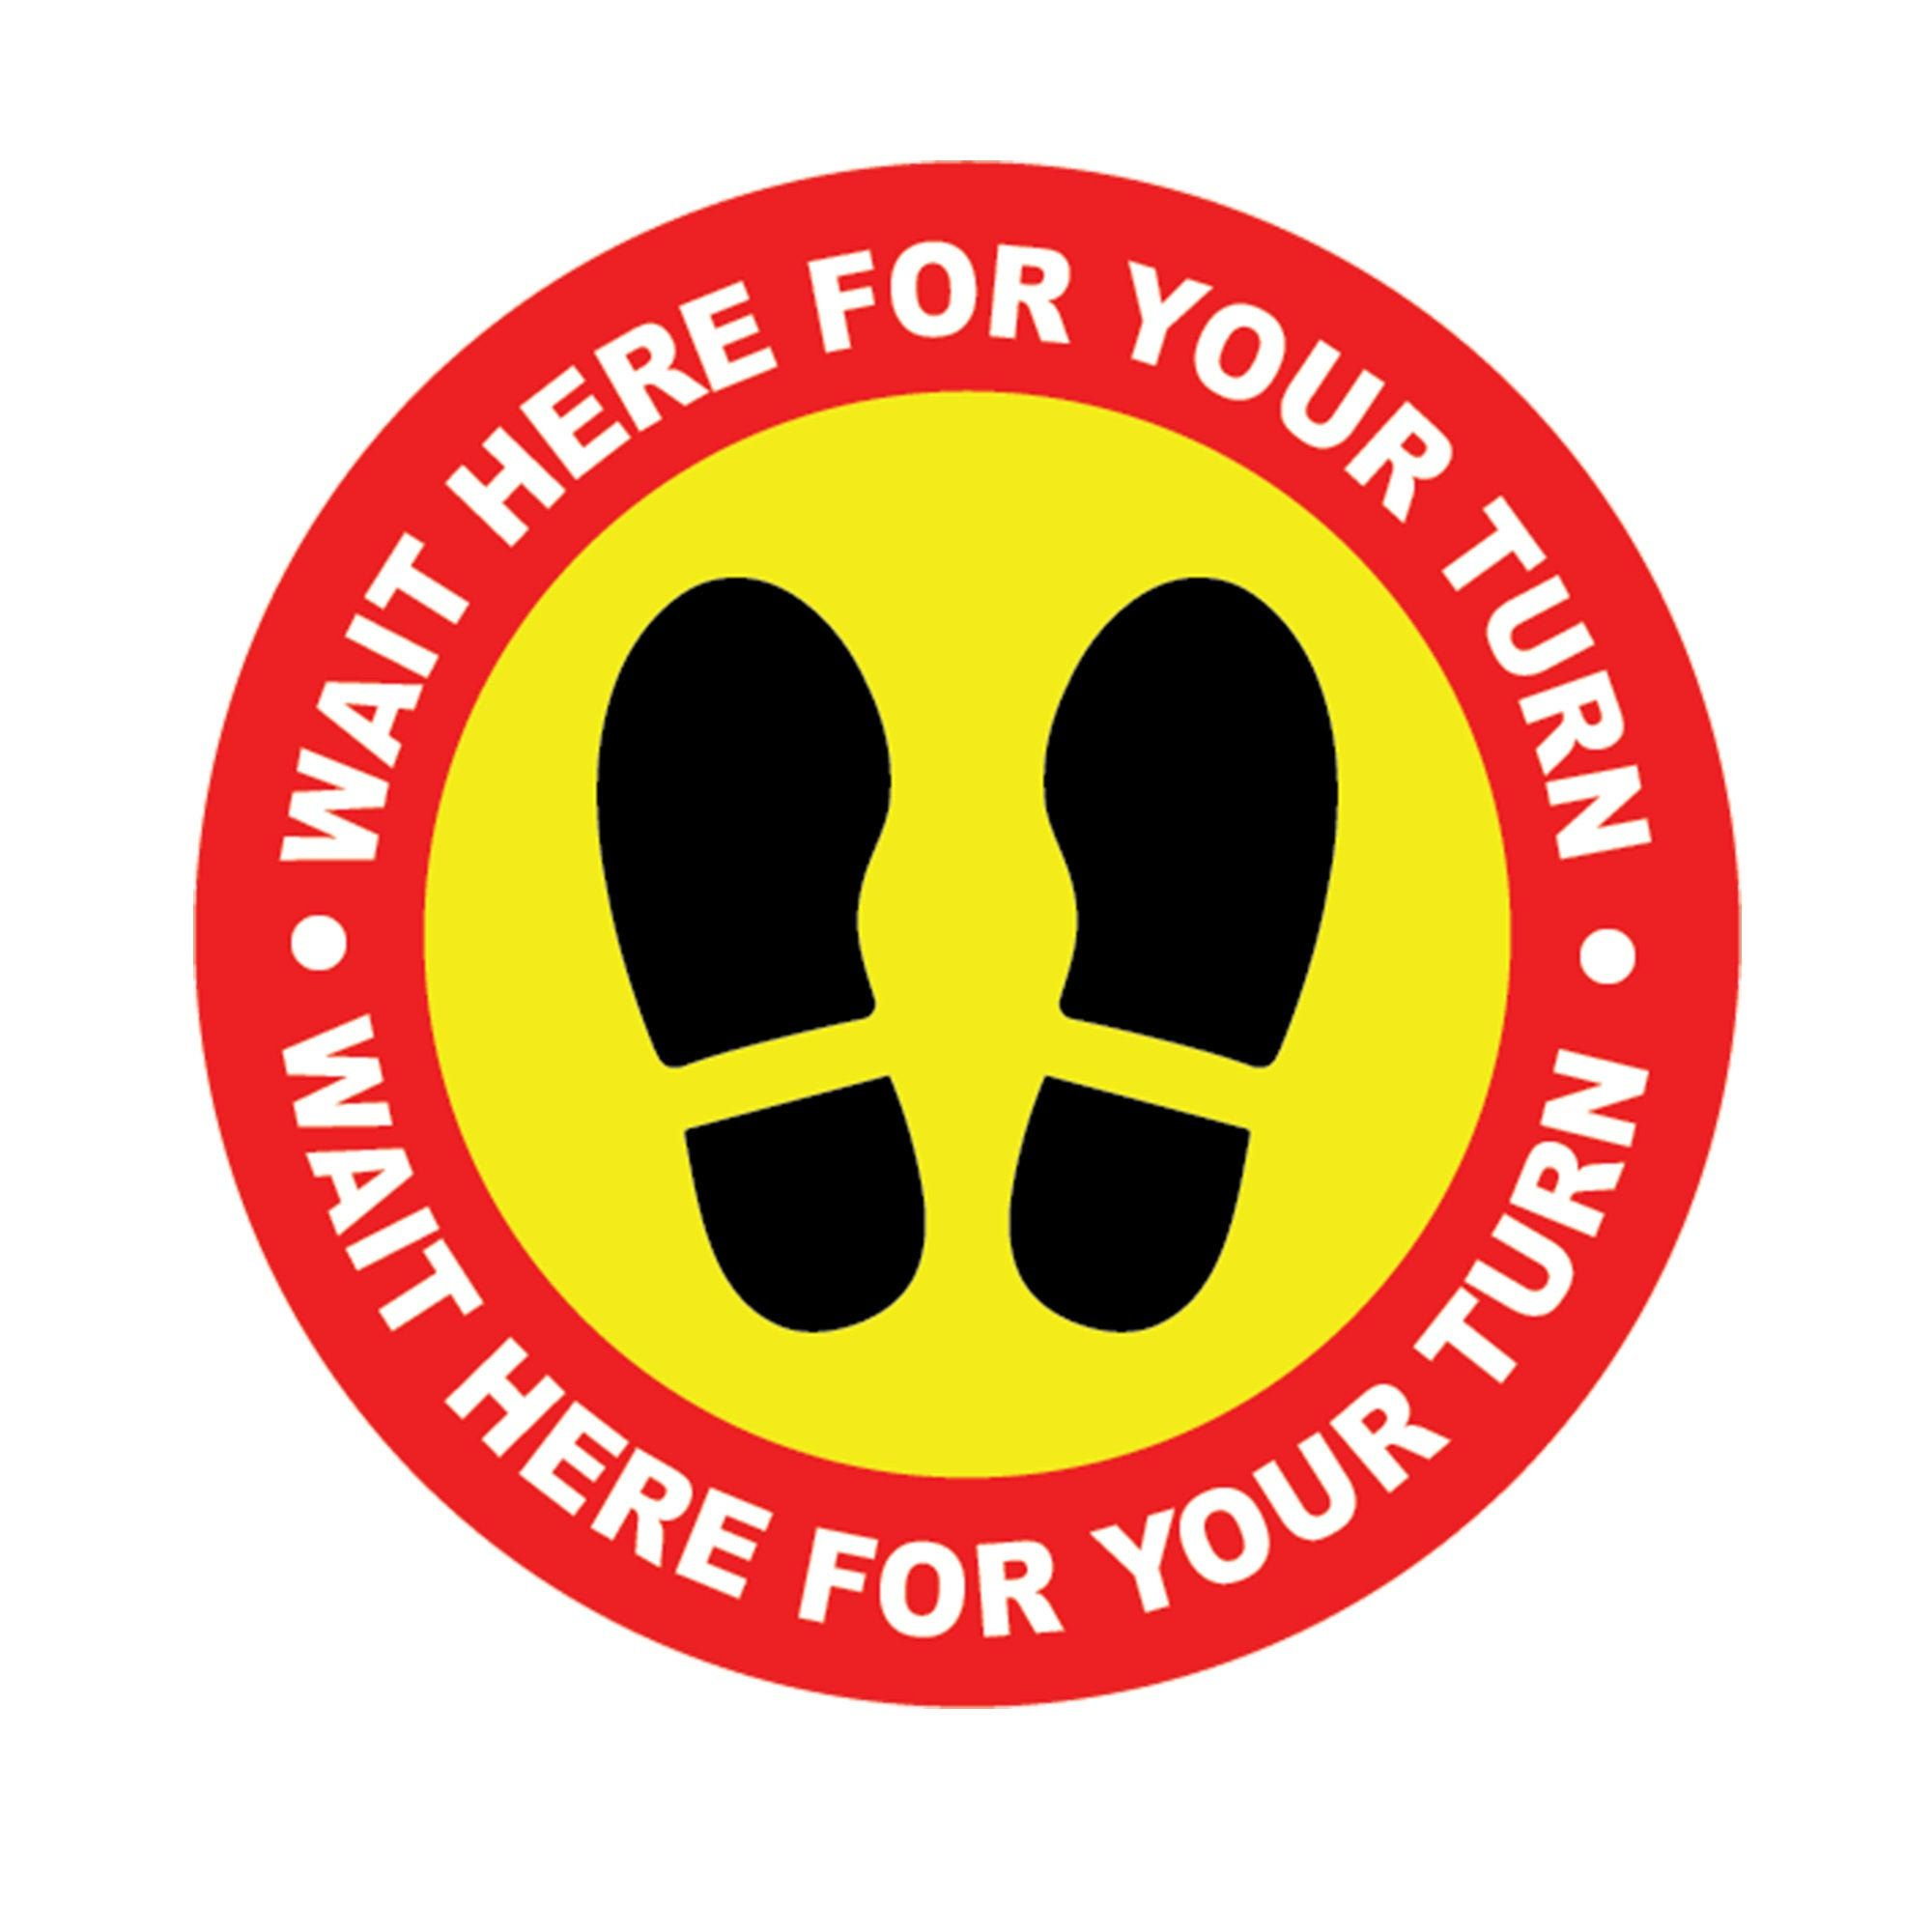 Social distancing Vinyl Circle stickers Wait here for your